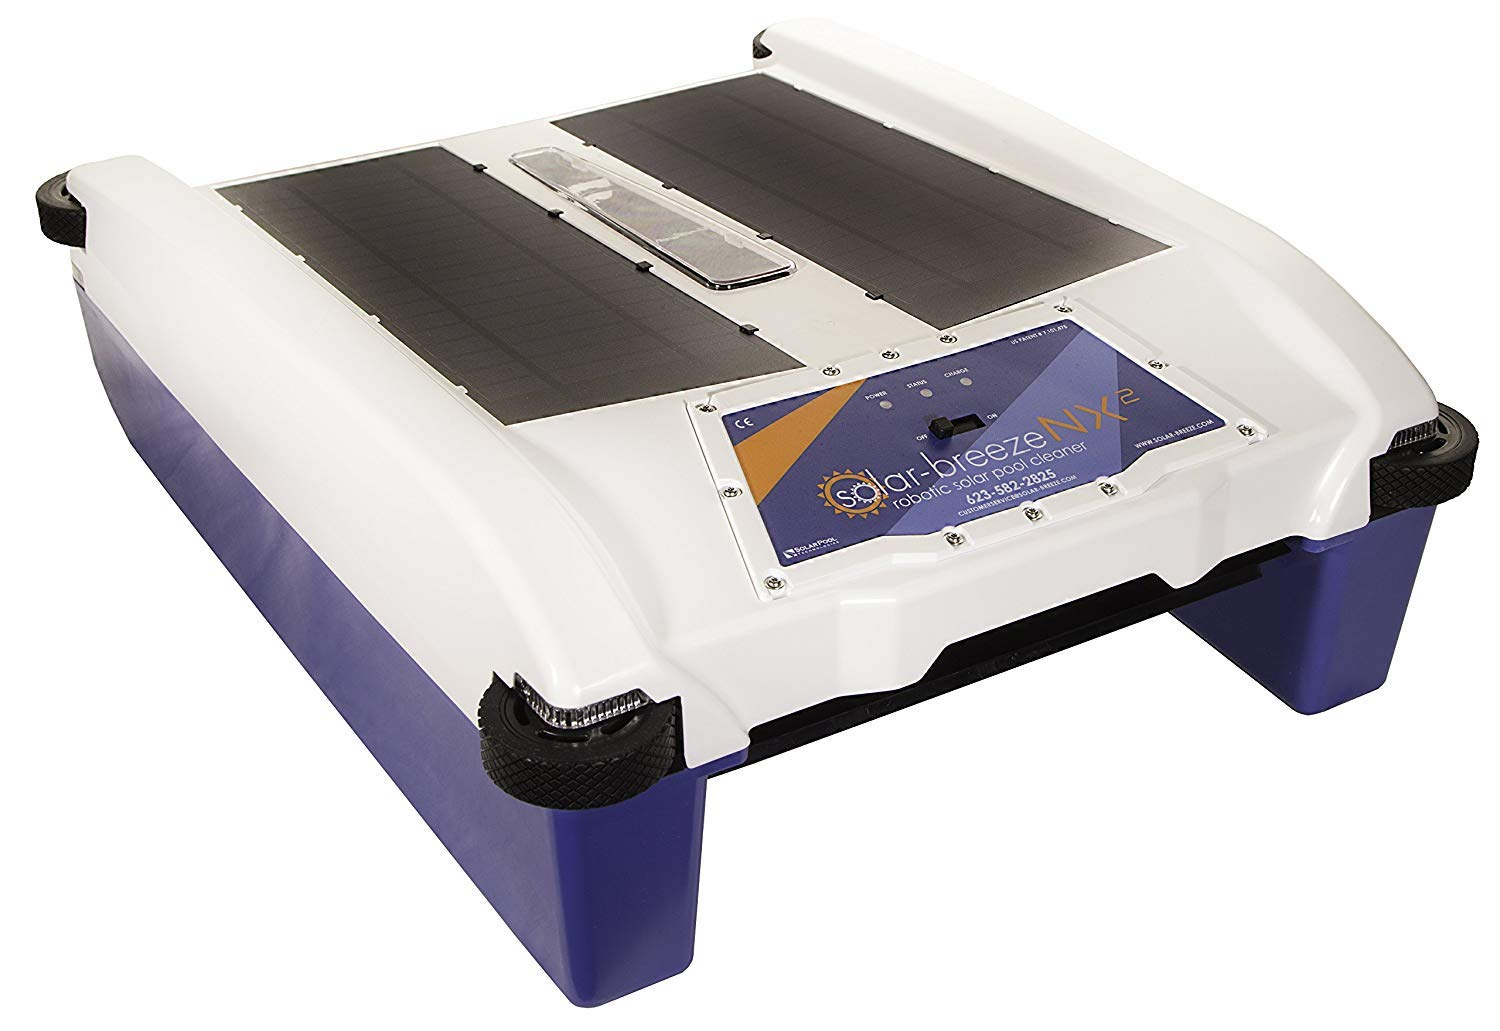 Solar Breeze – Automatic Pool Cleaner NX2 Cleaning Robot